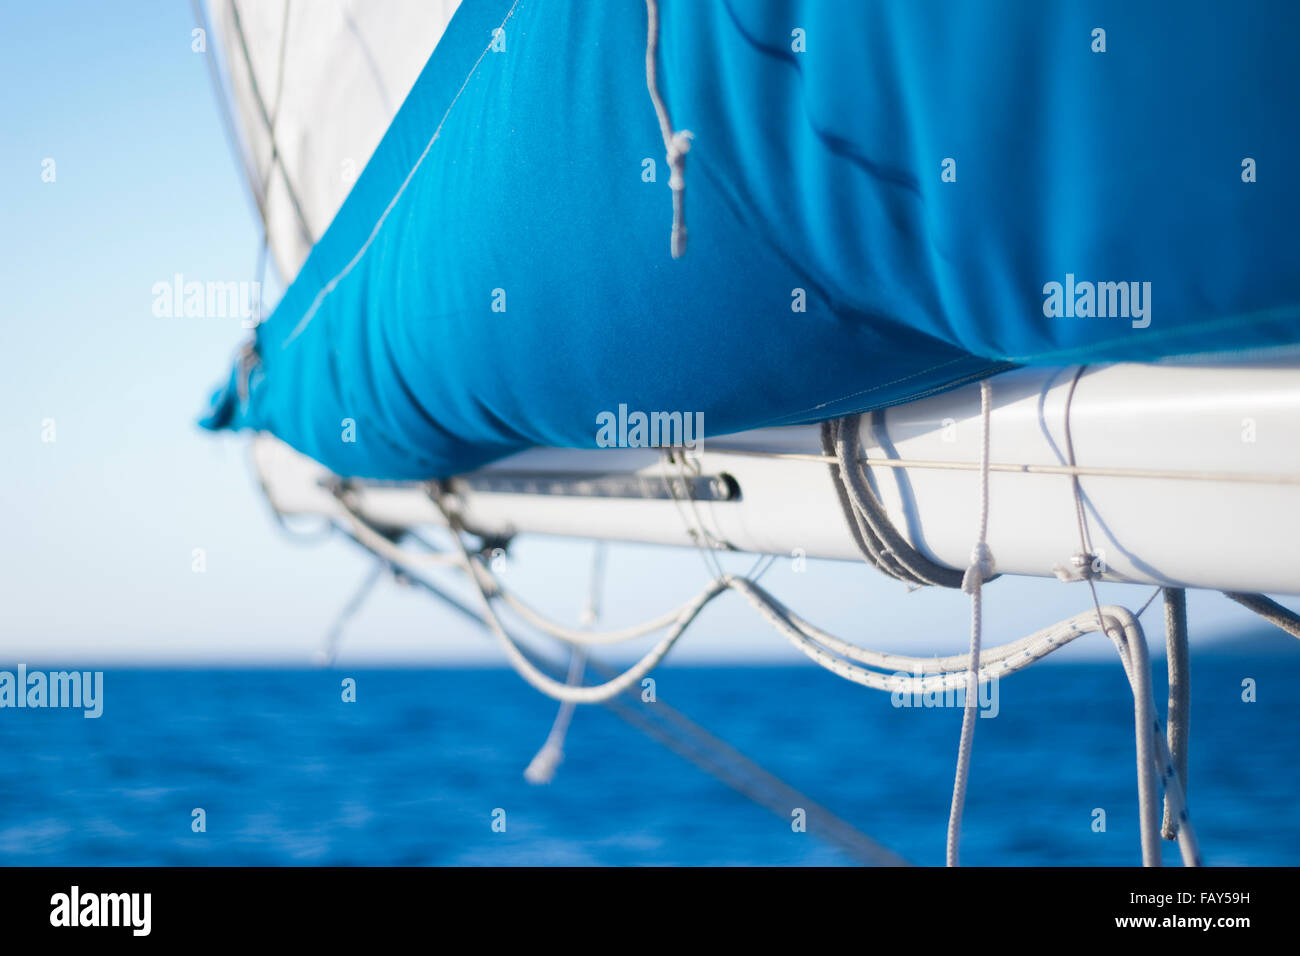 Boom and sail cover on a sloop. - Stock Image